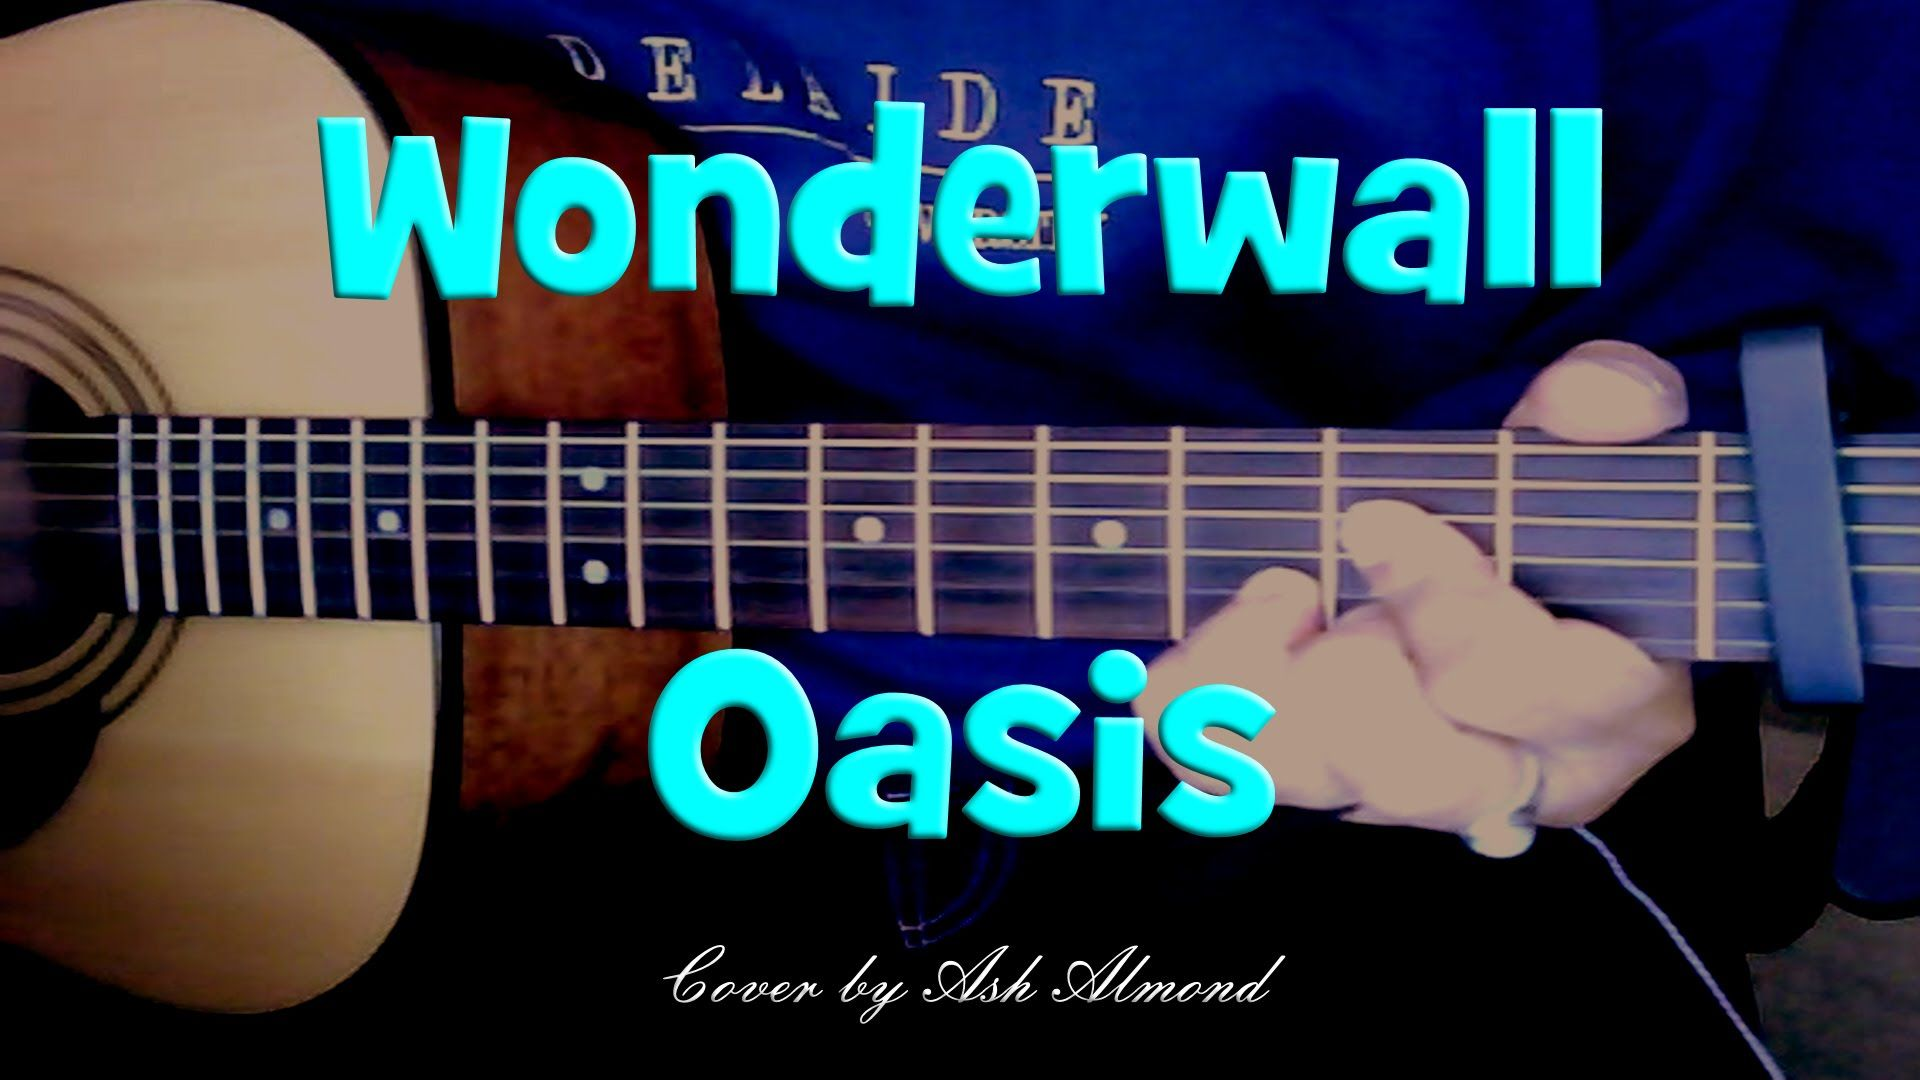 Oasis Wonderwall Acoustic Guitar Cover By Ash Almond